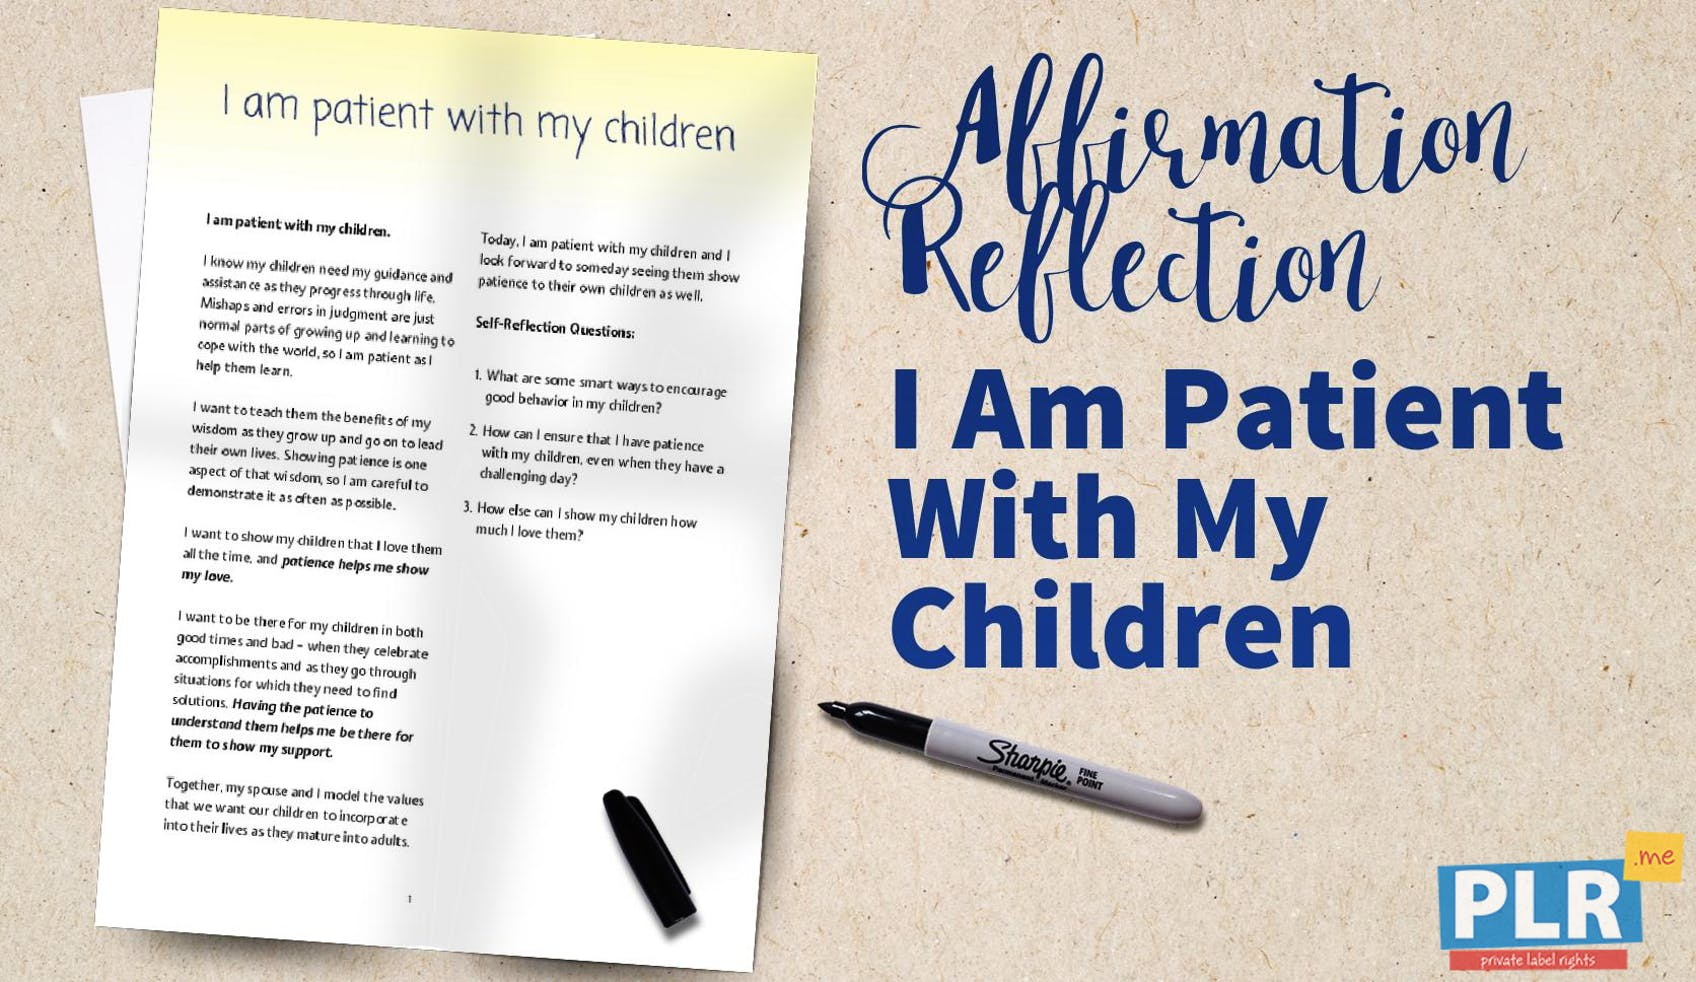 Why Parents Need To Be Patient With >> Plr Affirmation Reflections I Am Patient With My Children Plr Me